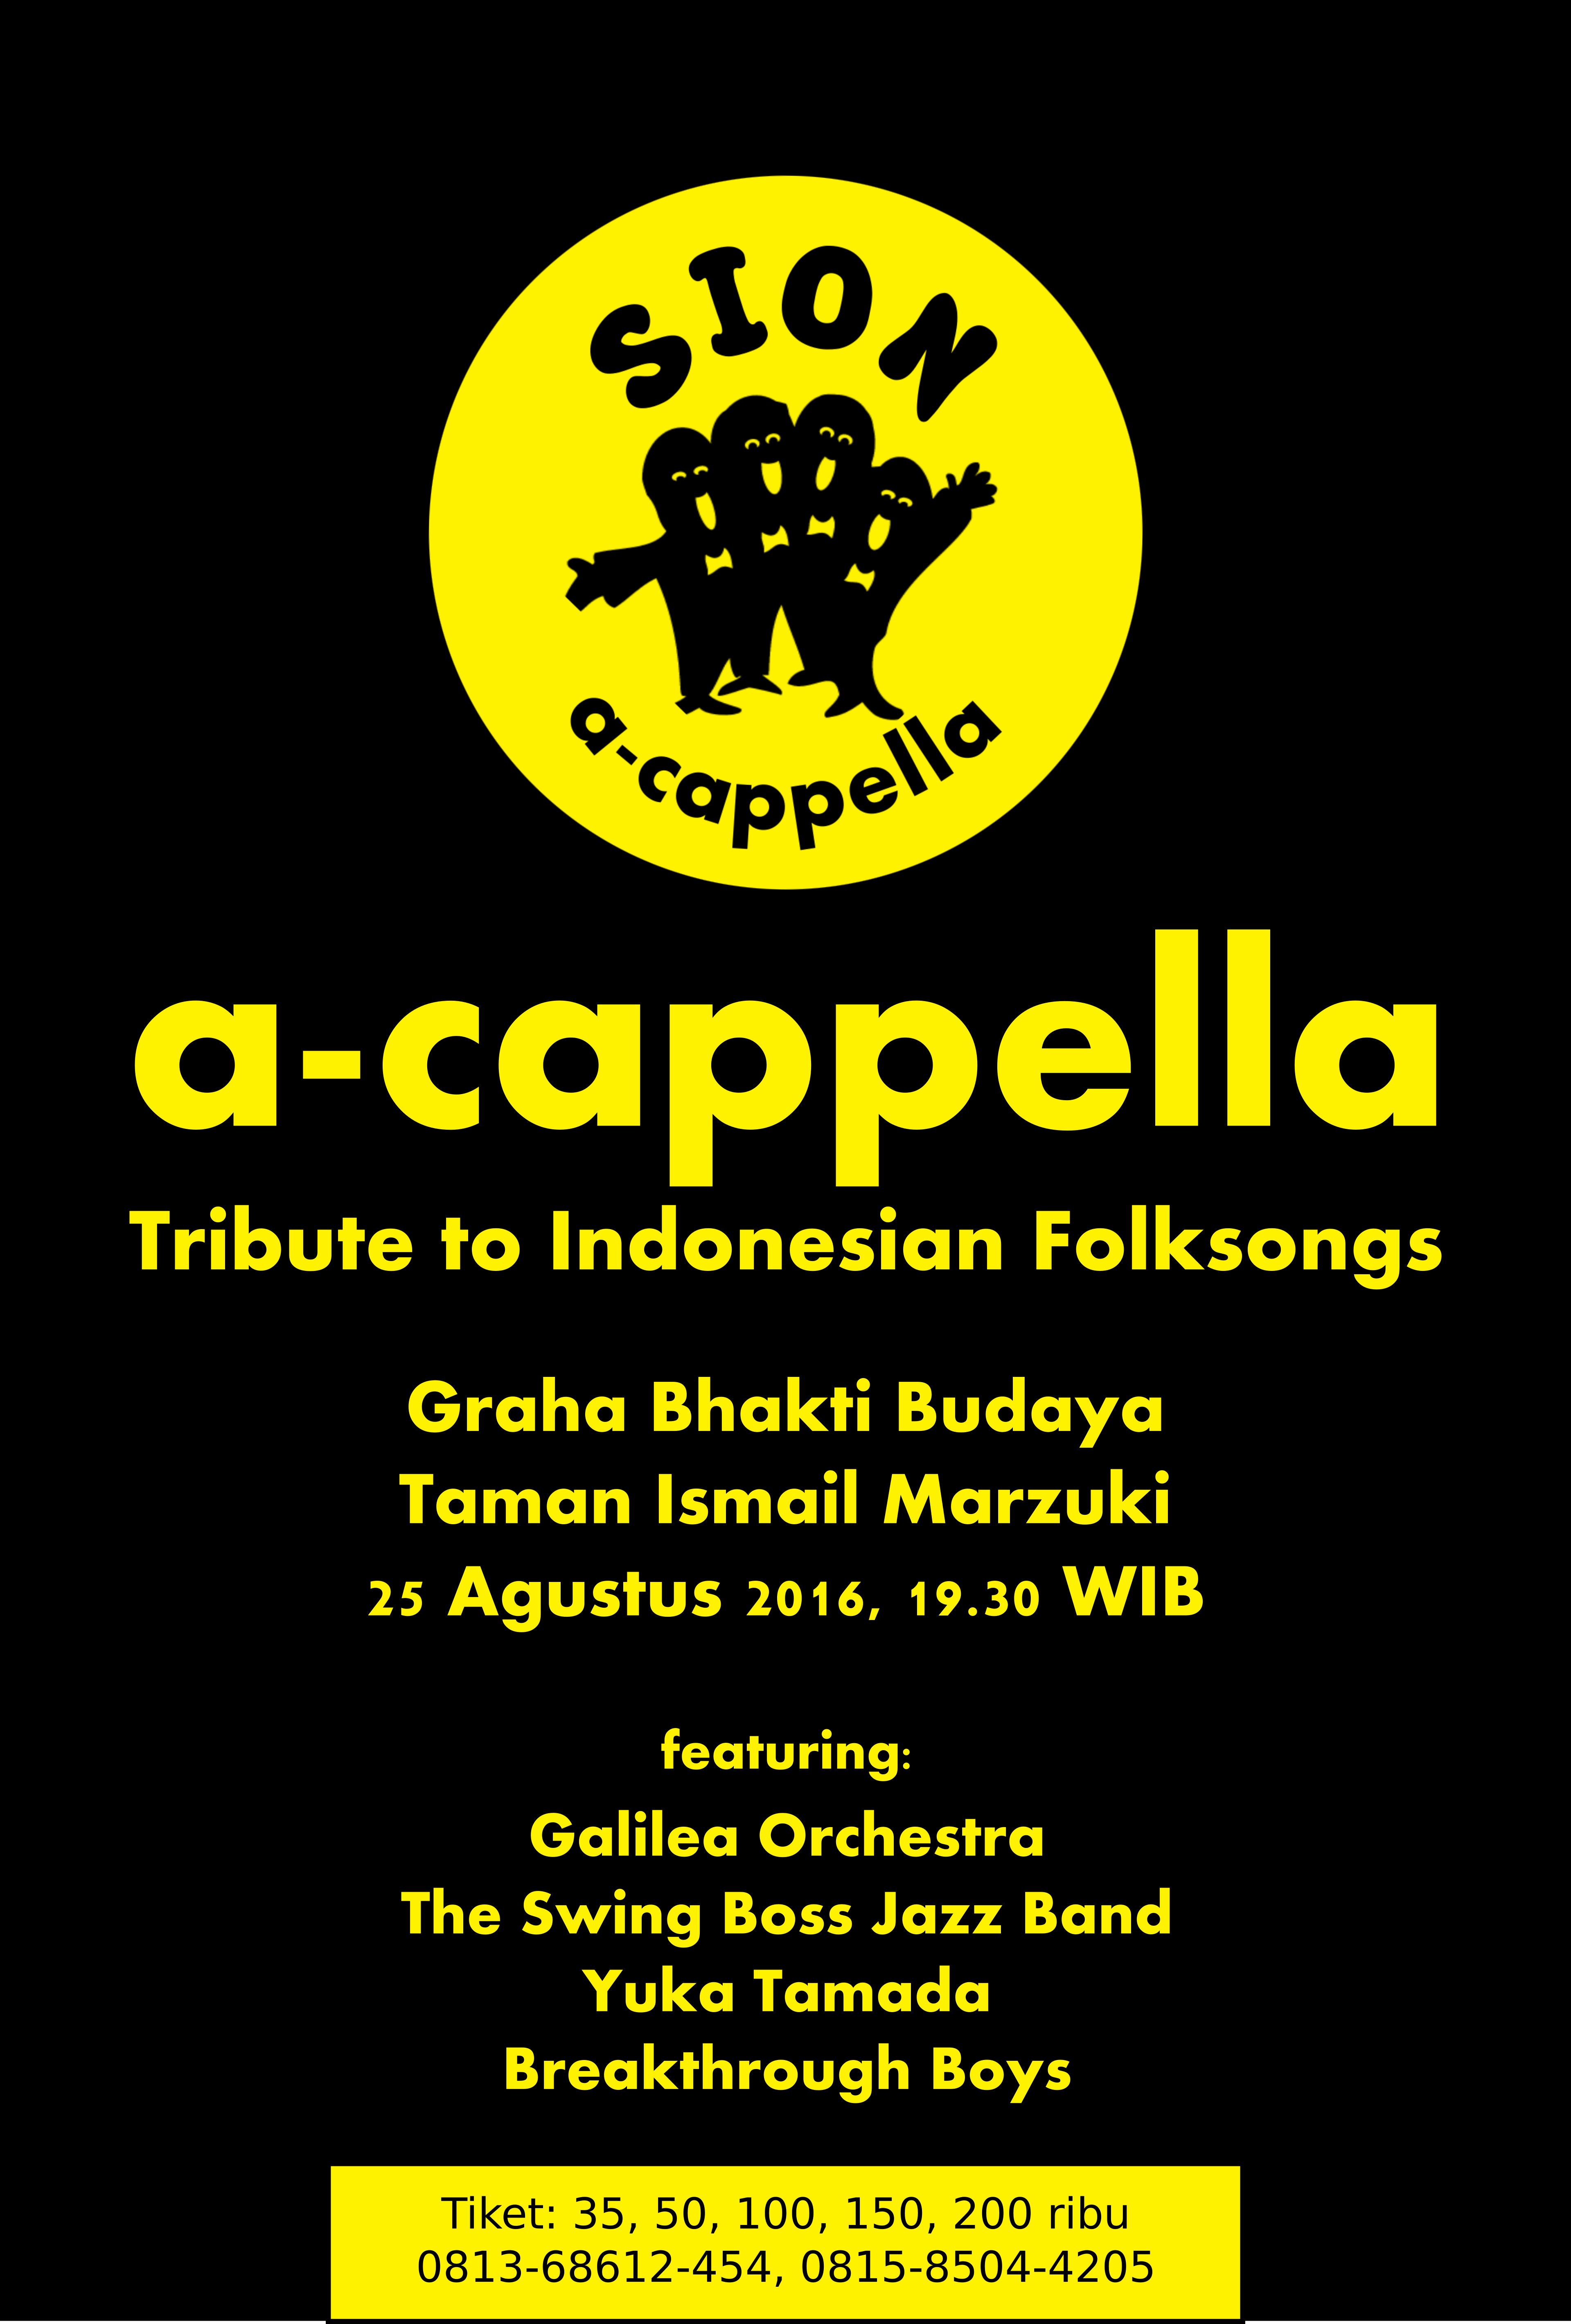 a-cappela tribute to Indonesian Folksongs